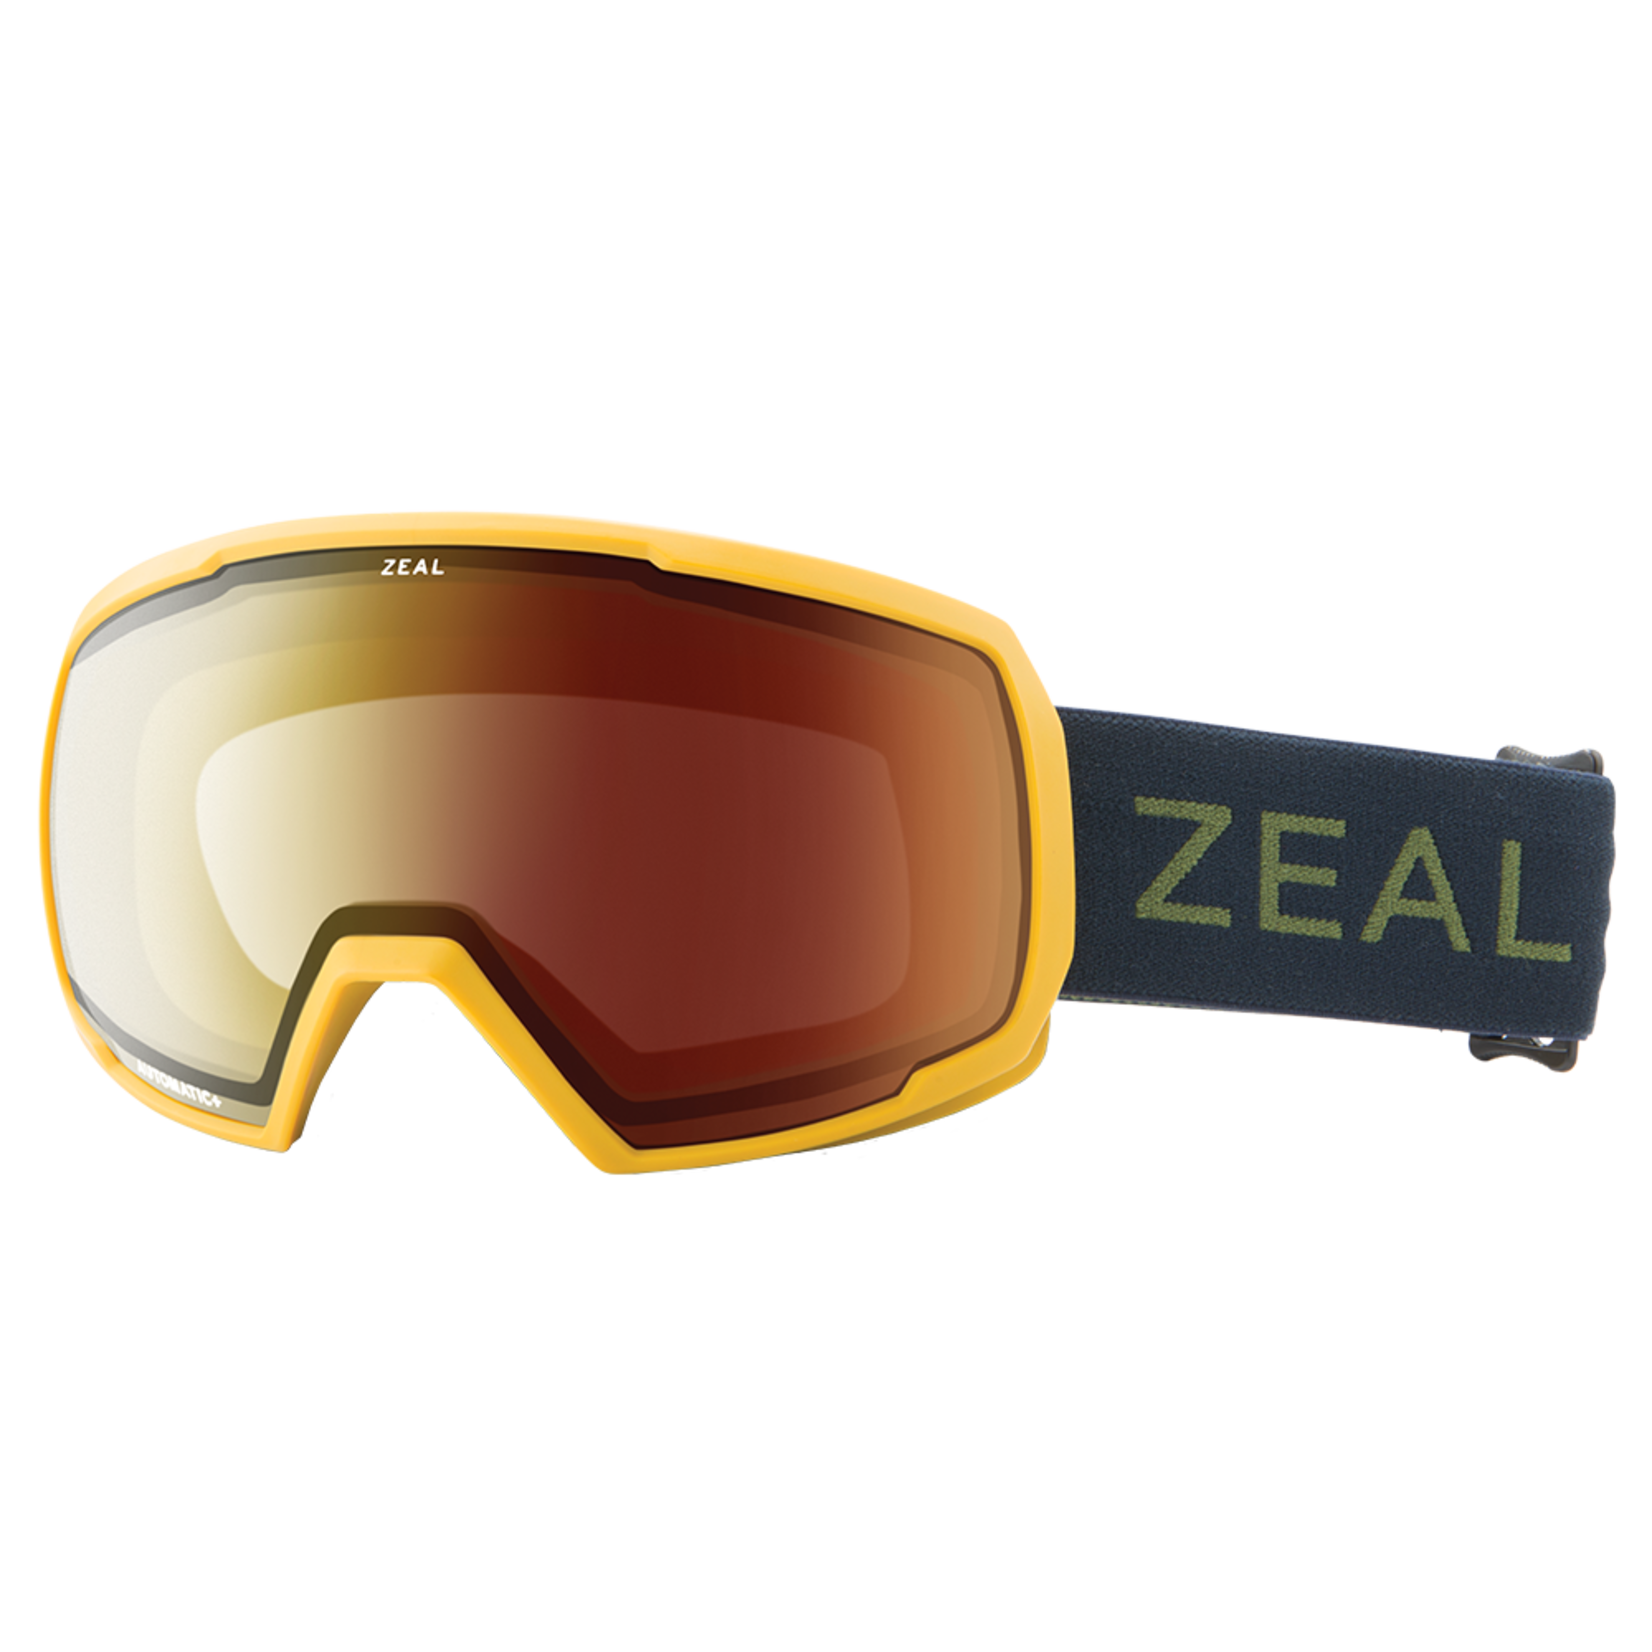 Nomad Blue Maize Goggles